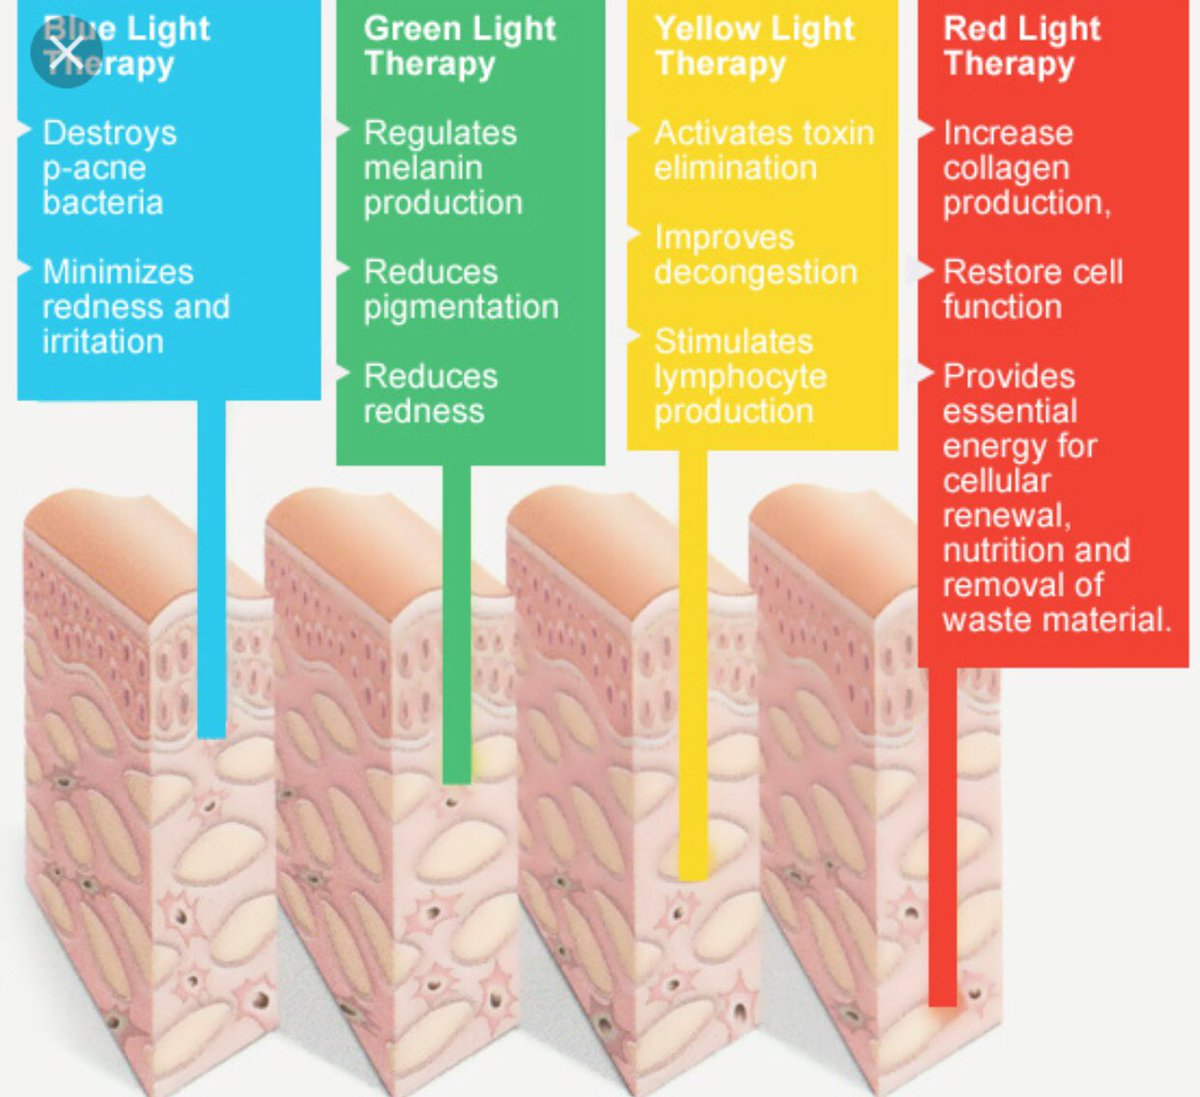 LED Light Therapy Benefits and Explanation Graph